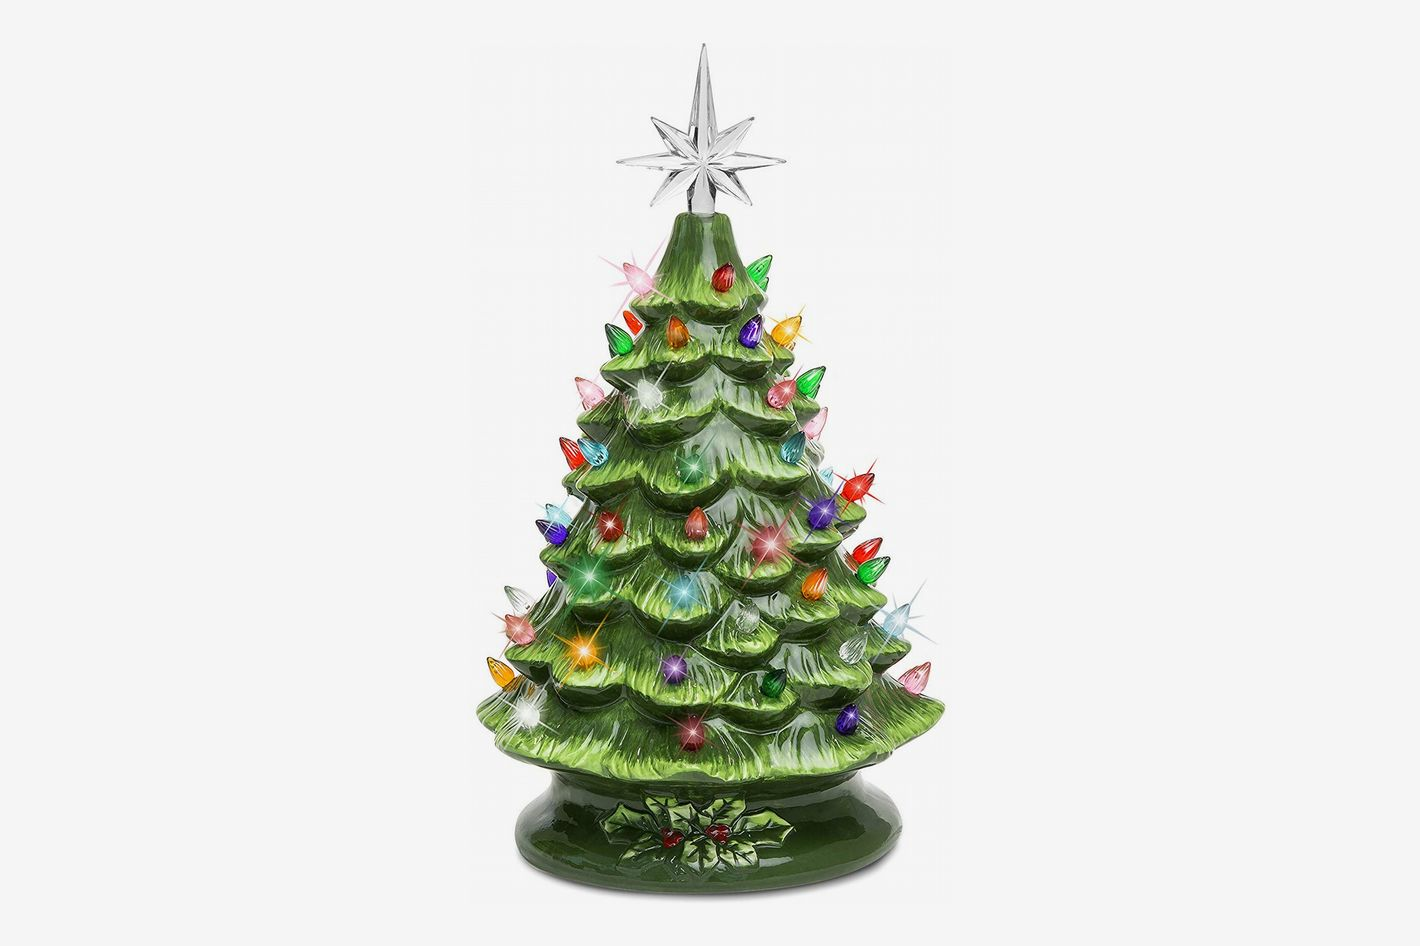 Best Choice Products 15 Inch Prelit Ceramic Tabletop Christmas Tree